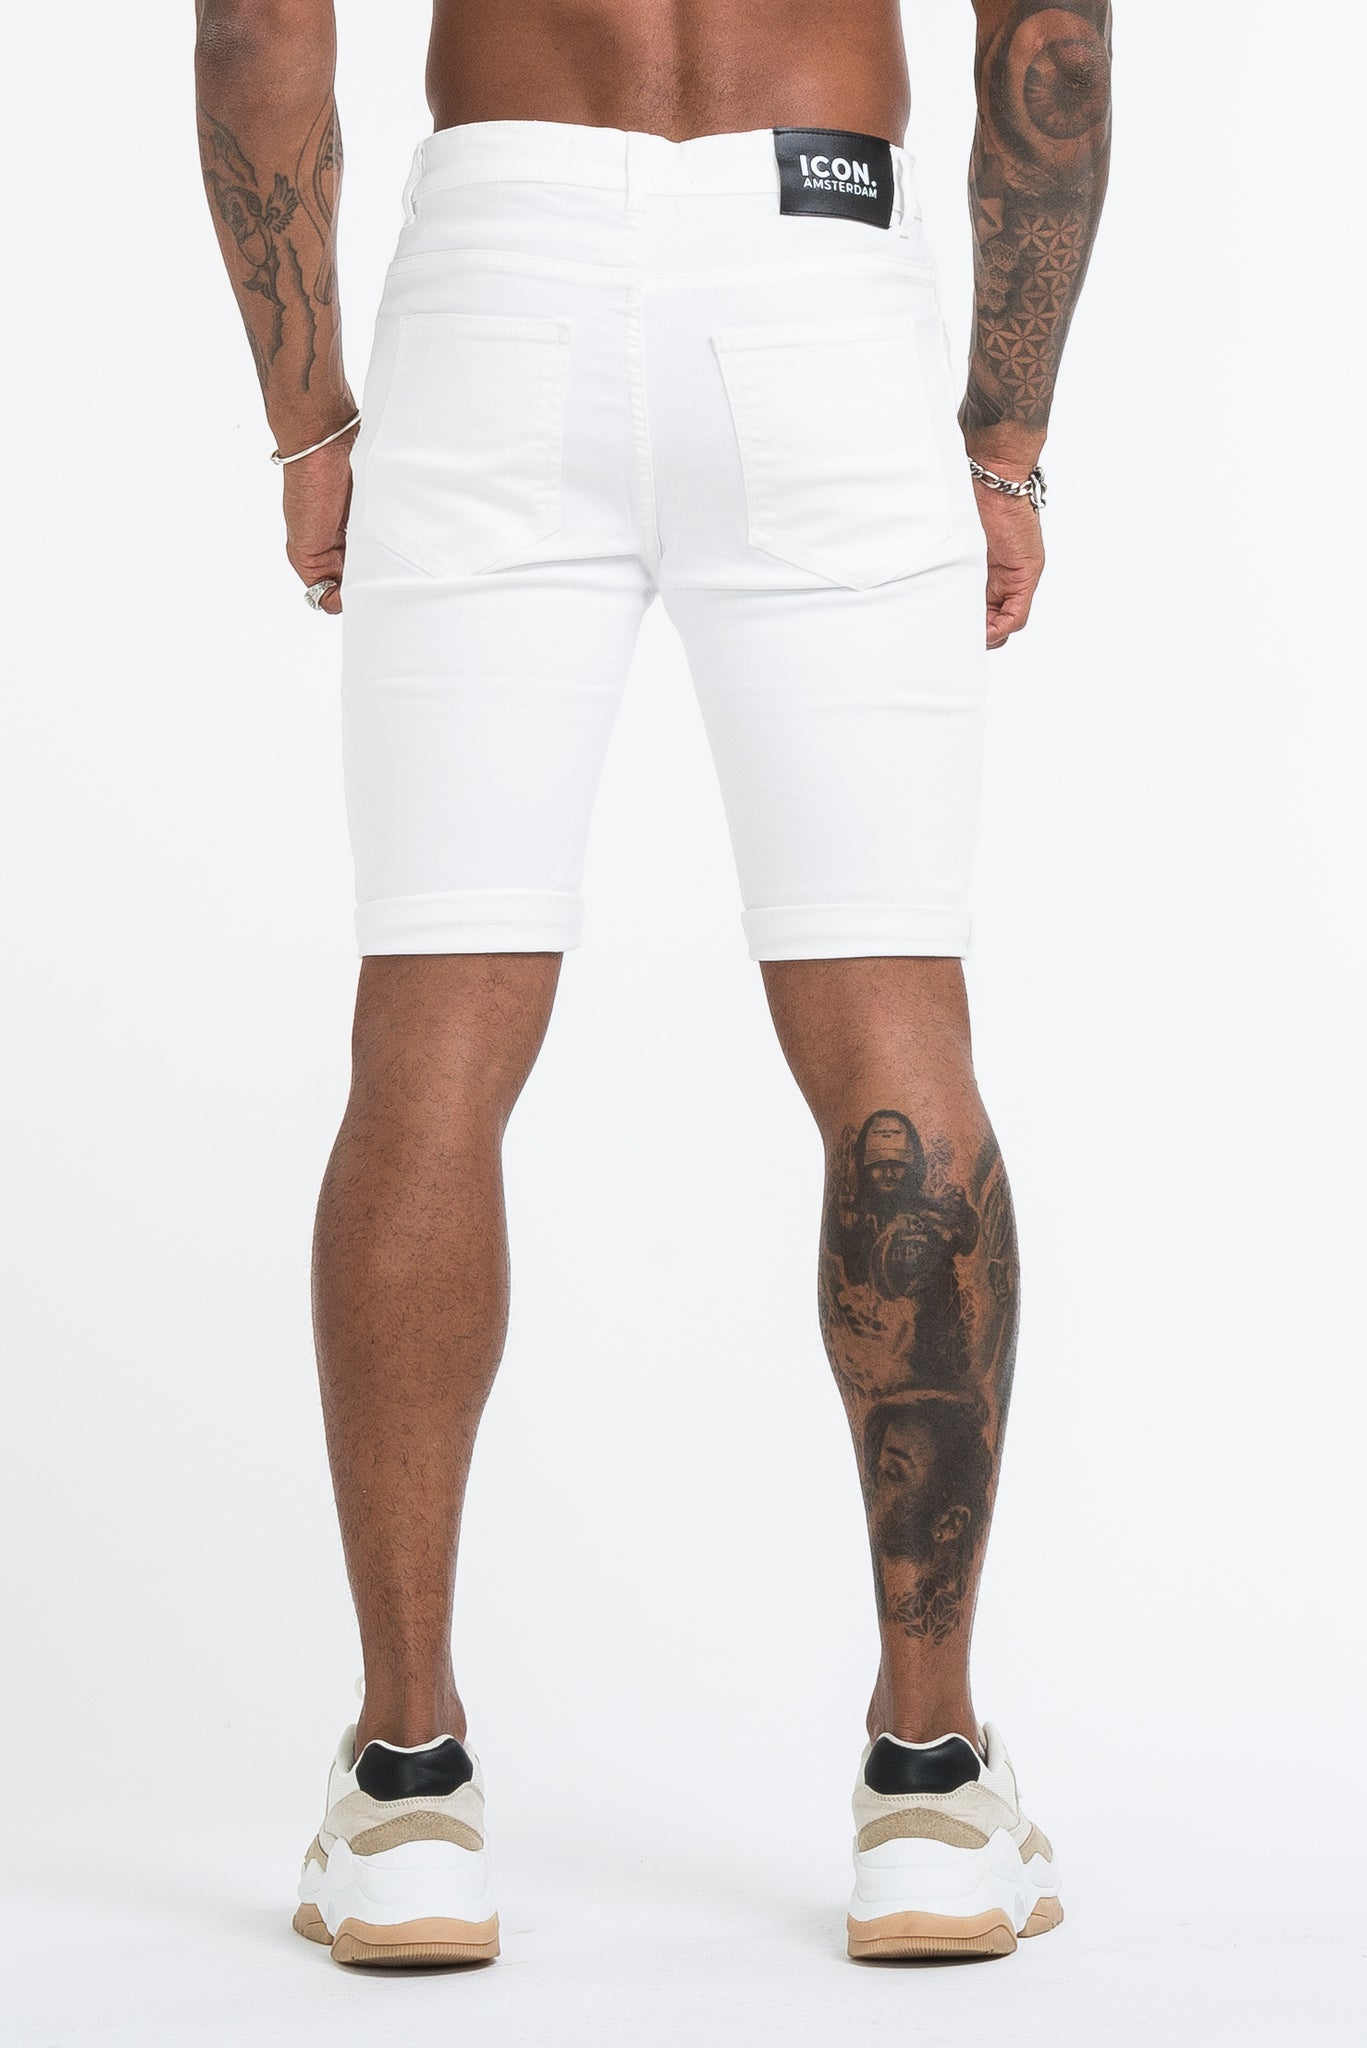 THE SAINT SHORTS - WHITE